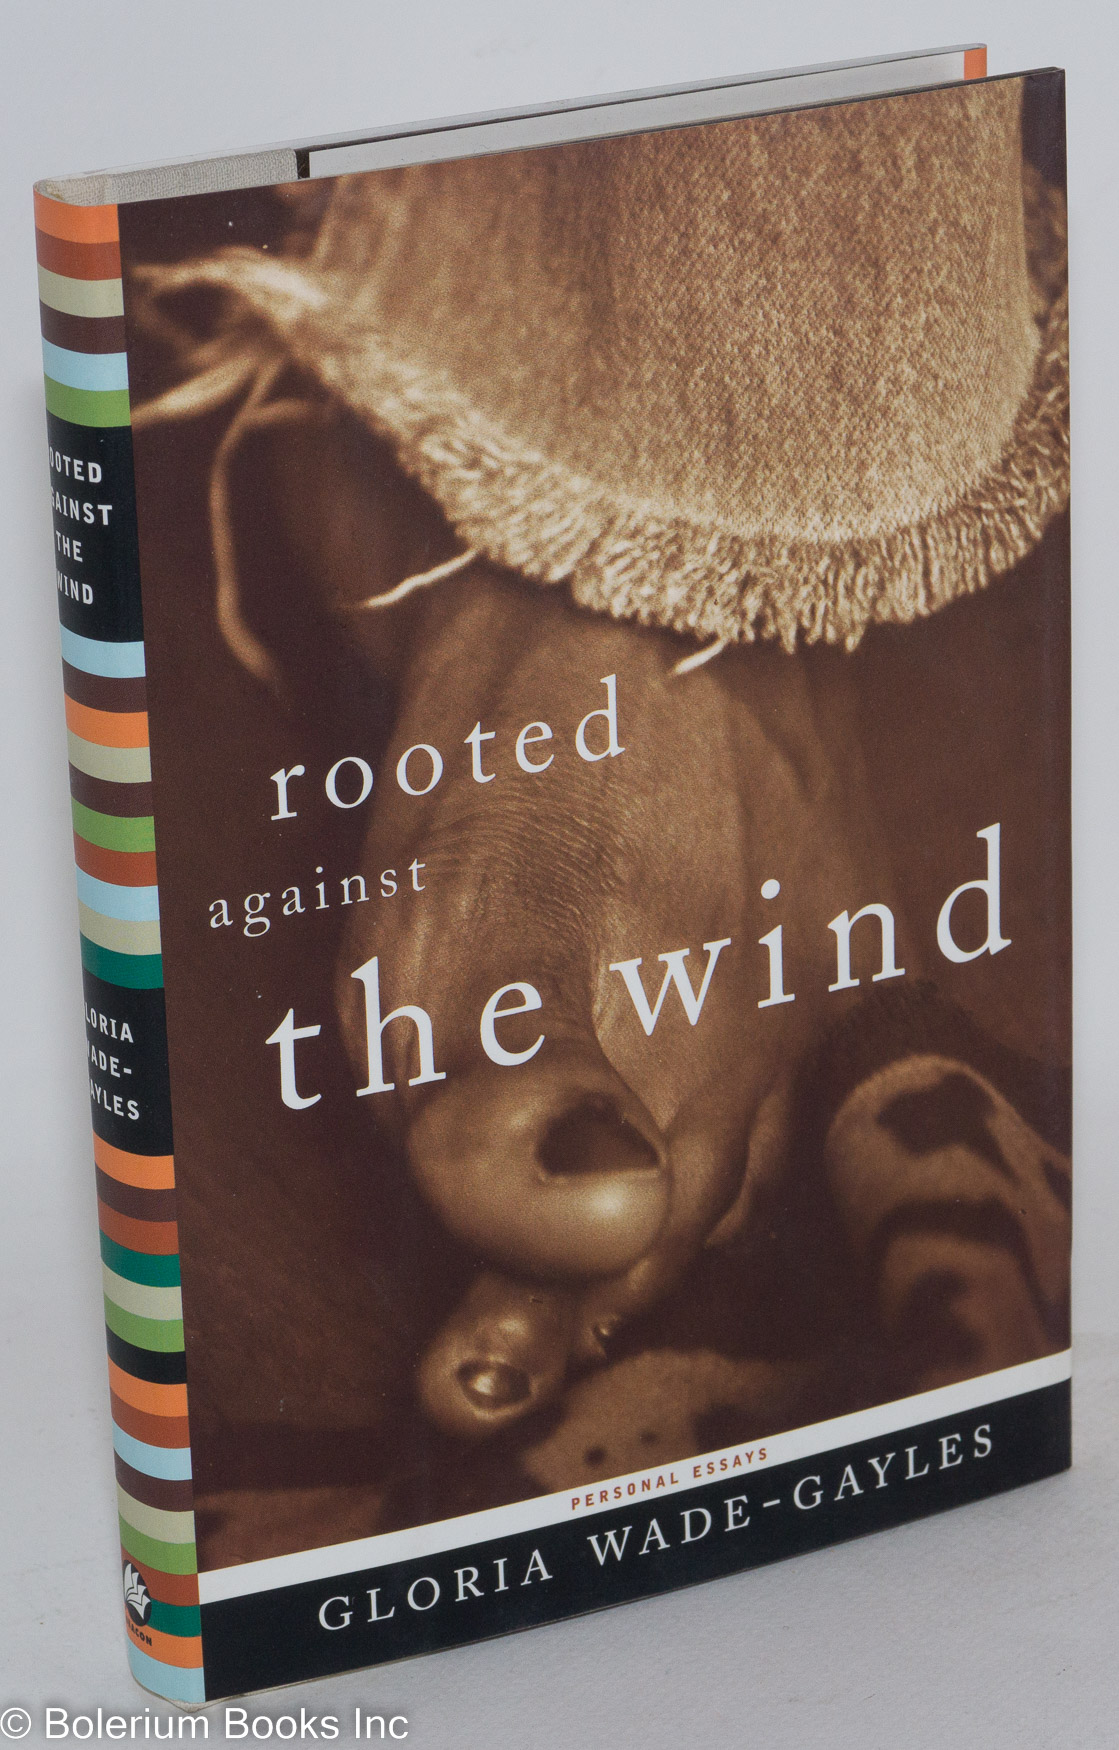 Rooted against the wind, personal essays